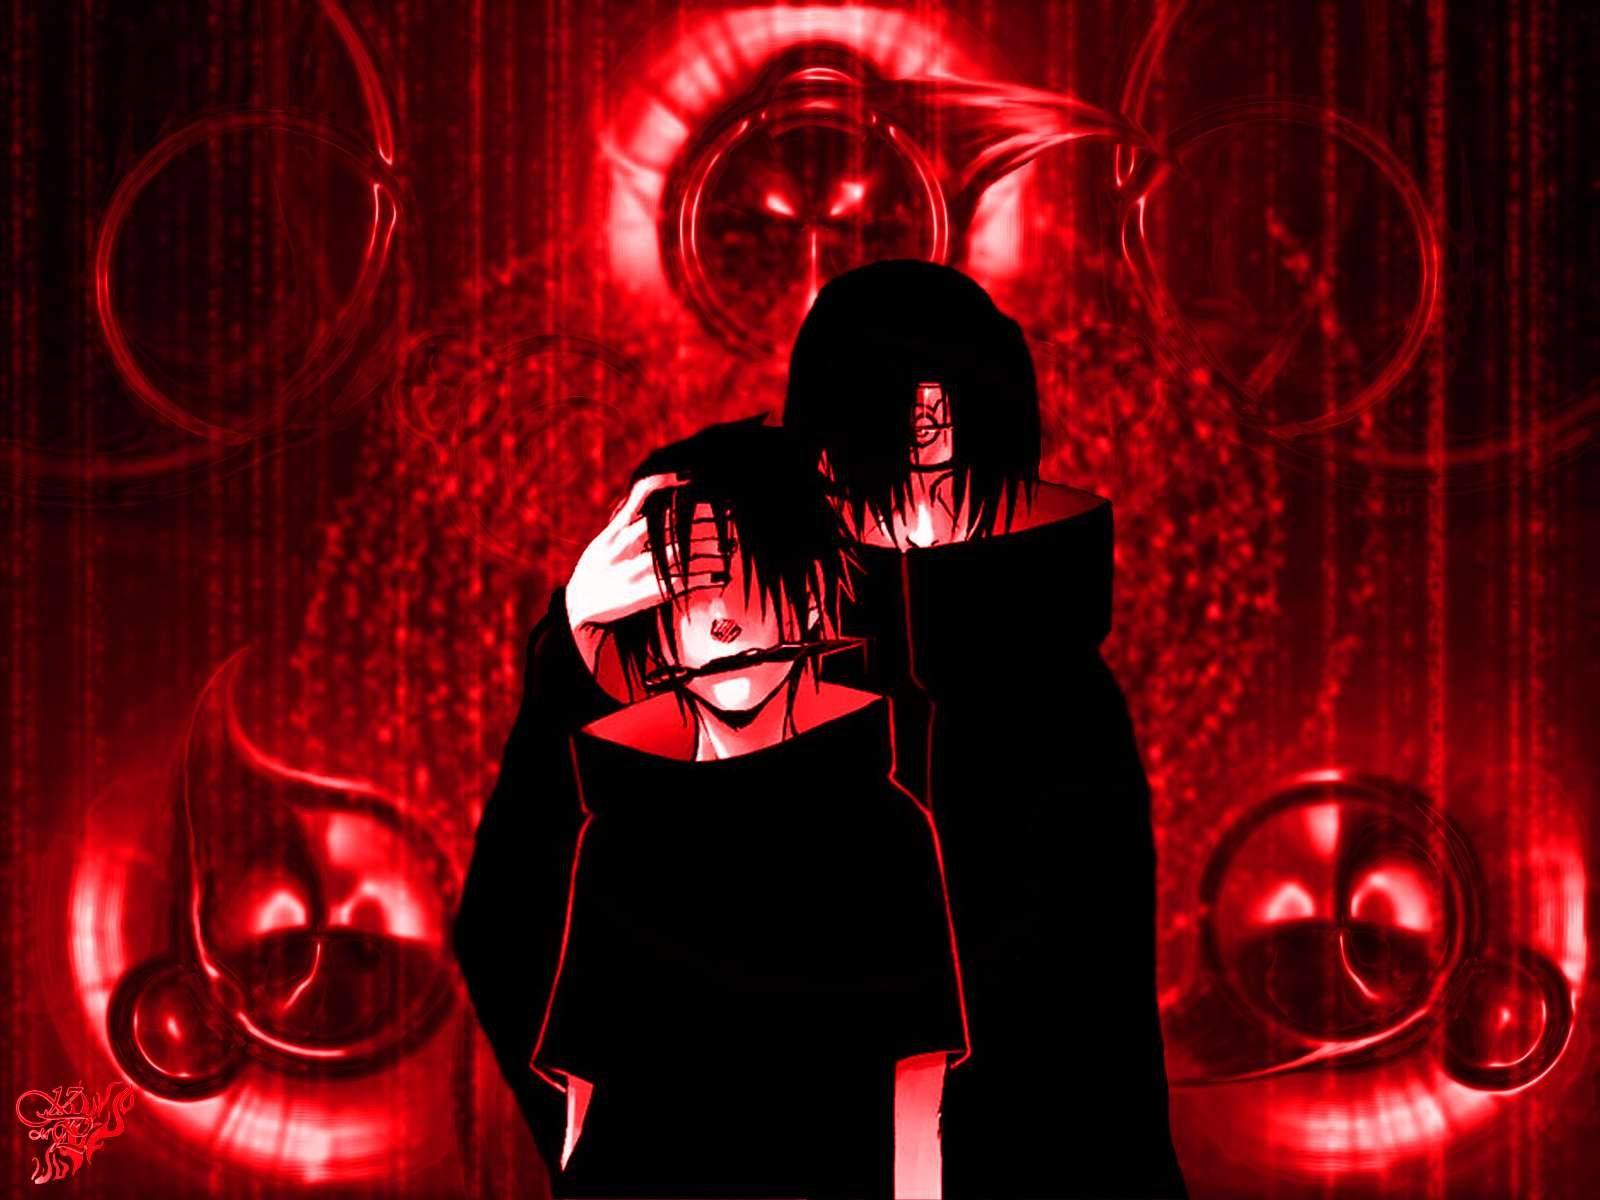 Red Screen Naruto Shippuden Anime HD Desktop PC Wallpapers Picture Wallpaper Pictures